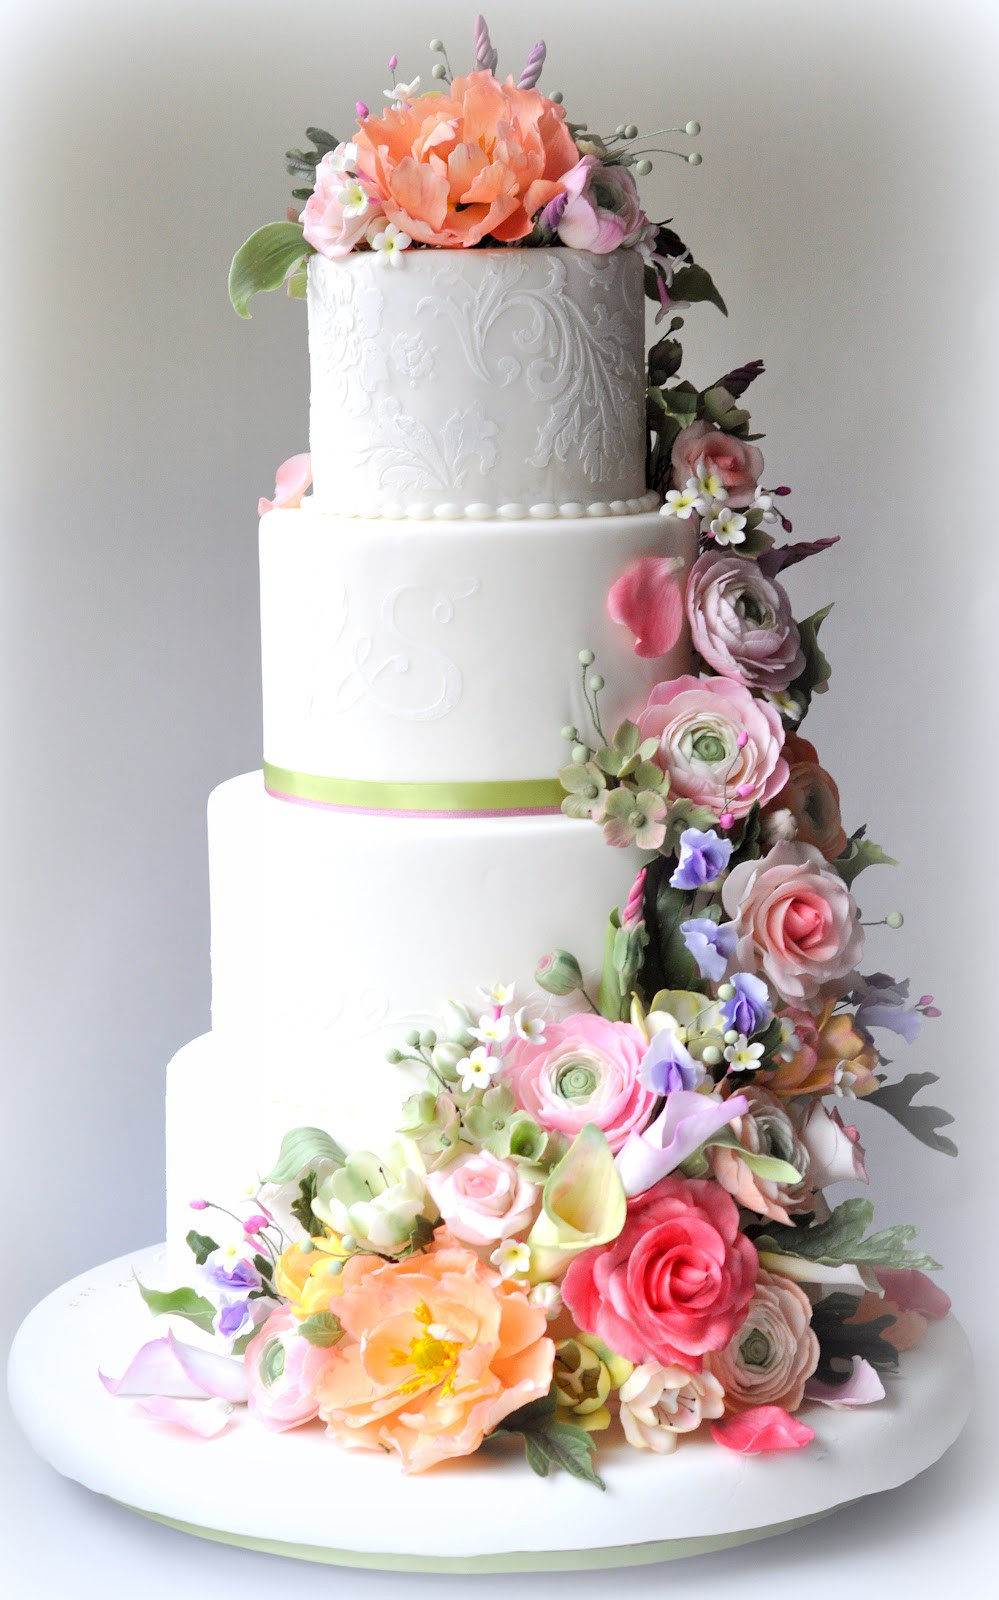 Wedding Cakes Flower 20 Ideas for 7 Gorgeous Reasons to Fall In Love with Spring Weddings